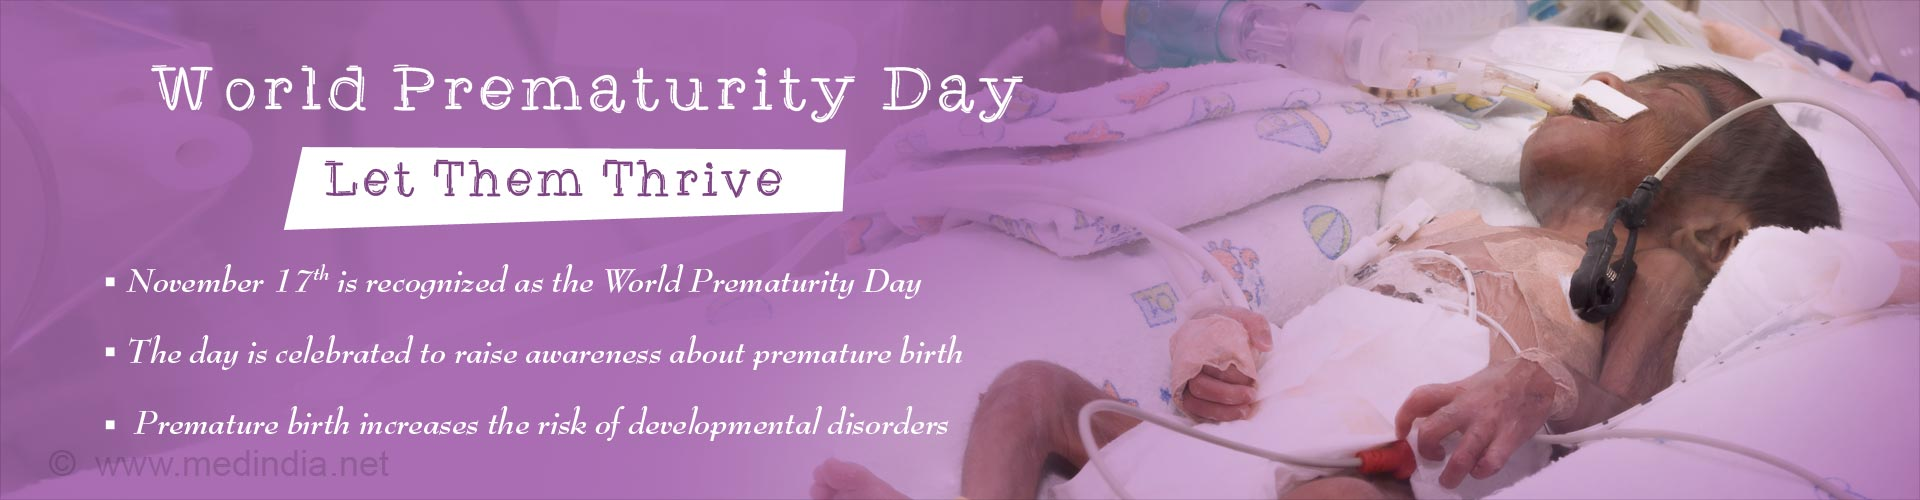 World Prematurity Day: Let Them Thrive